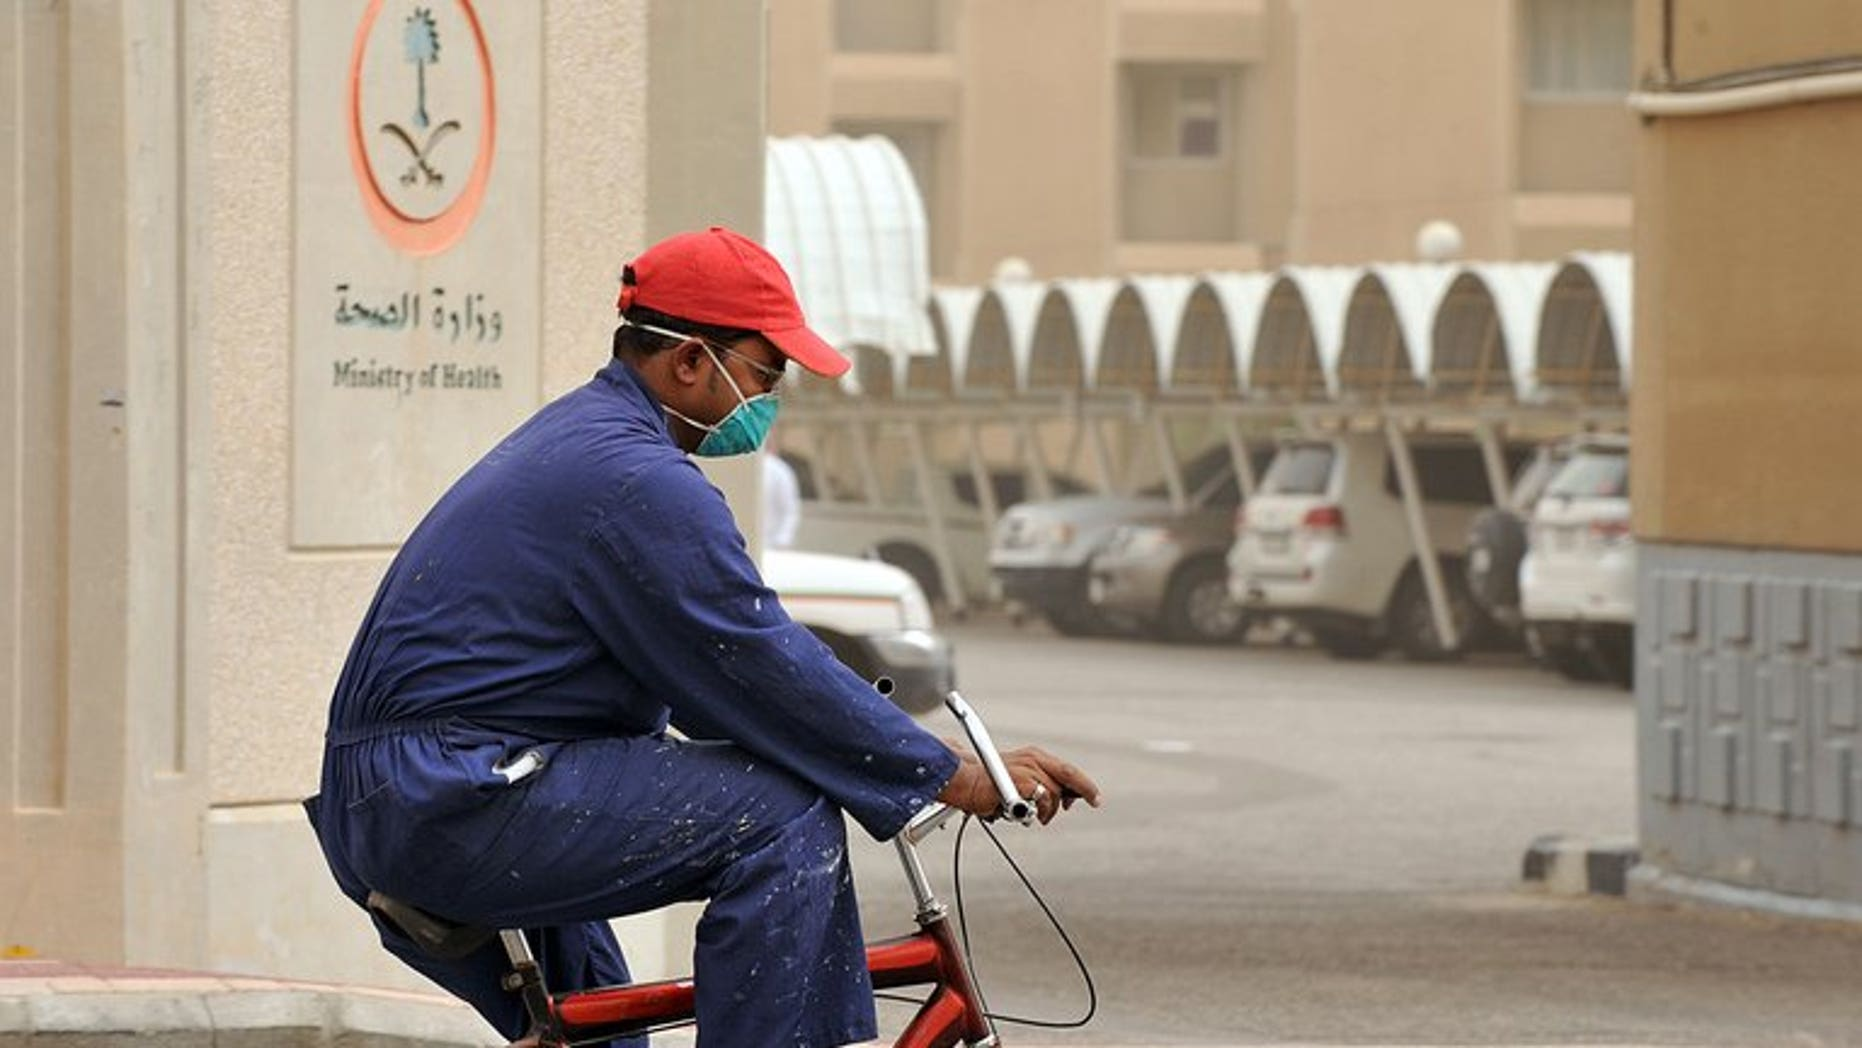 A foreign worker wears a mask as he rides a bicycle near the King Fahad hospital in the city of Hofuf on June 16, 2013. Health authorities in Qatar on Tuesday announced the first case of MERS coronavirus in the Gulf state, with a 59-year-old man infected.